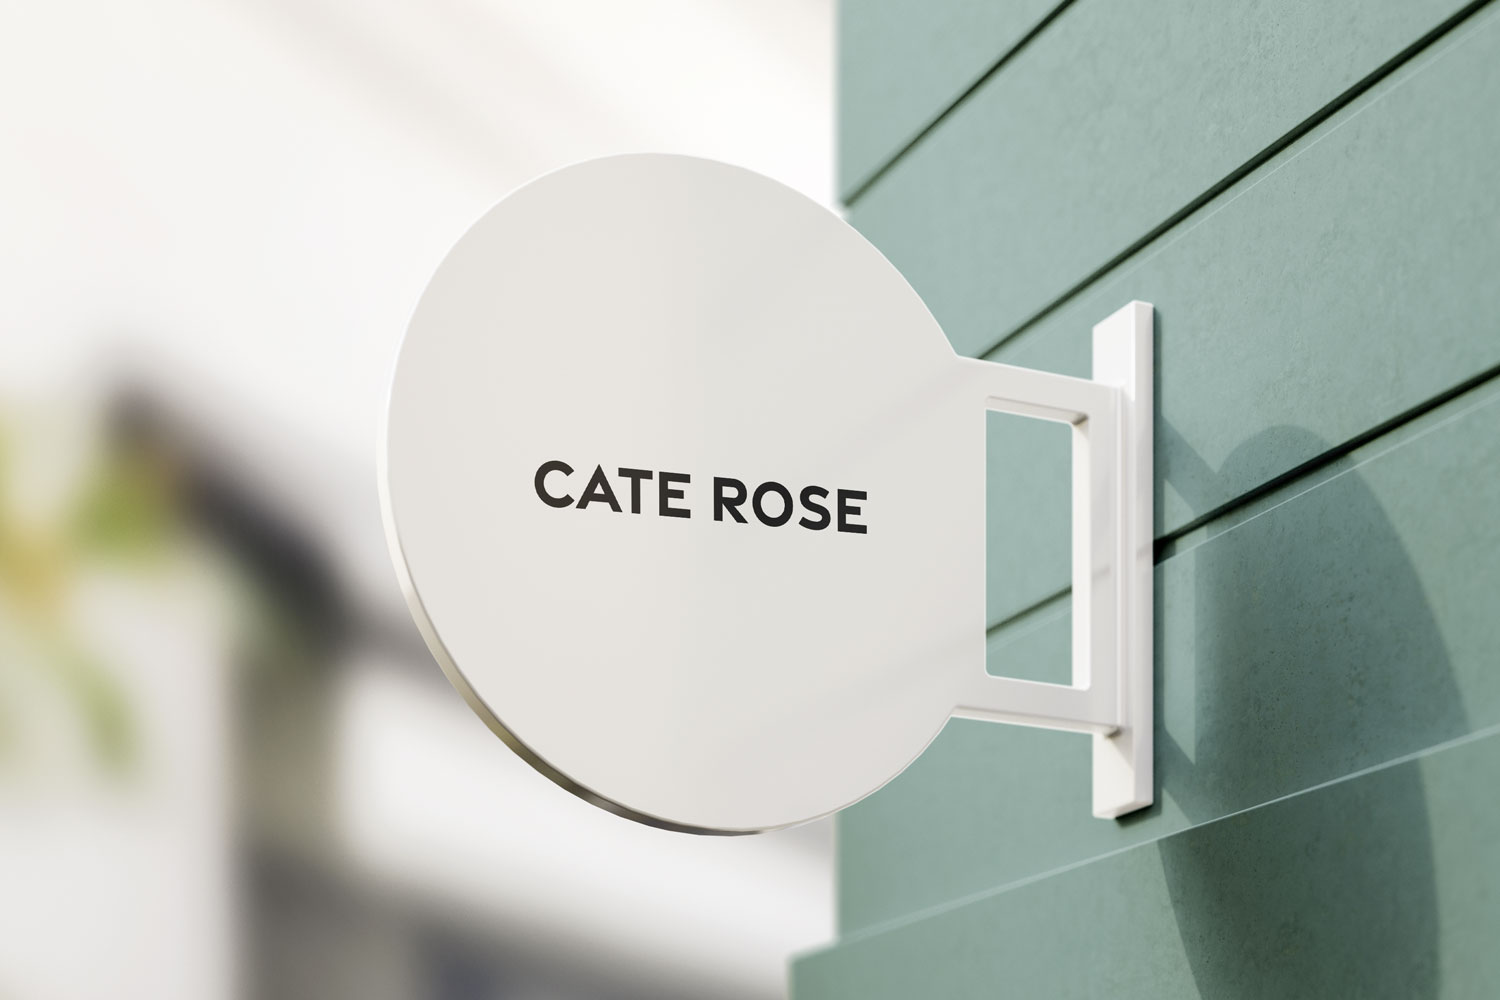 Cate Rose Brand Store Sign Mockup by Everything Here Now